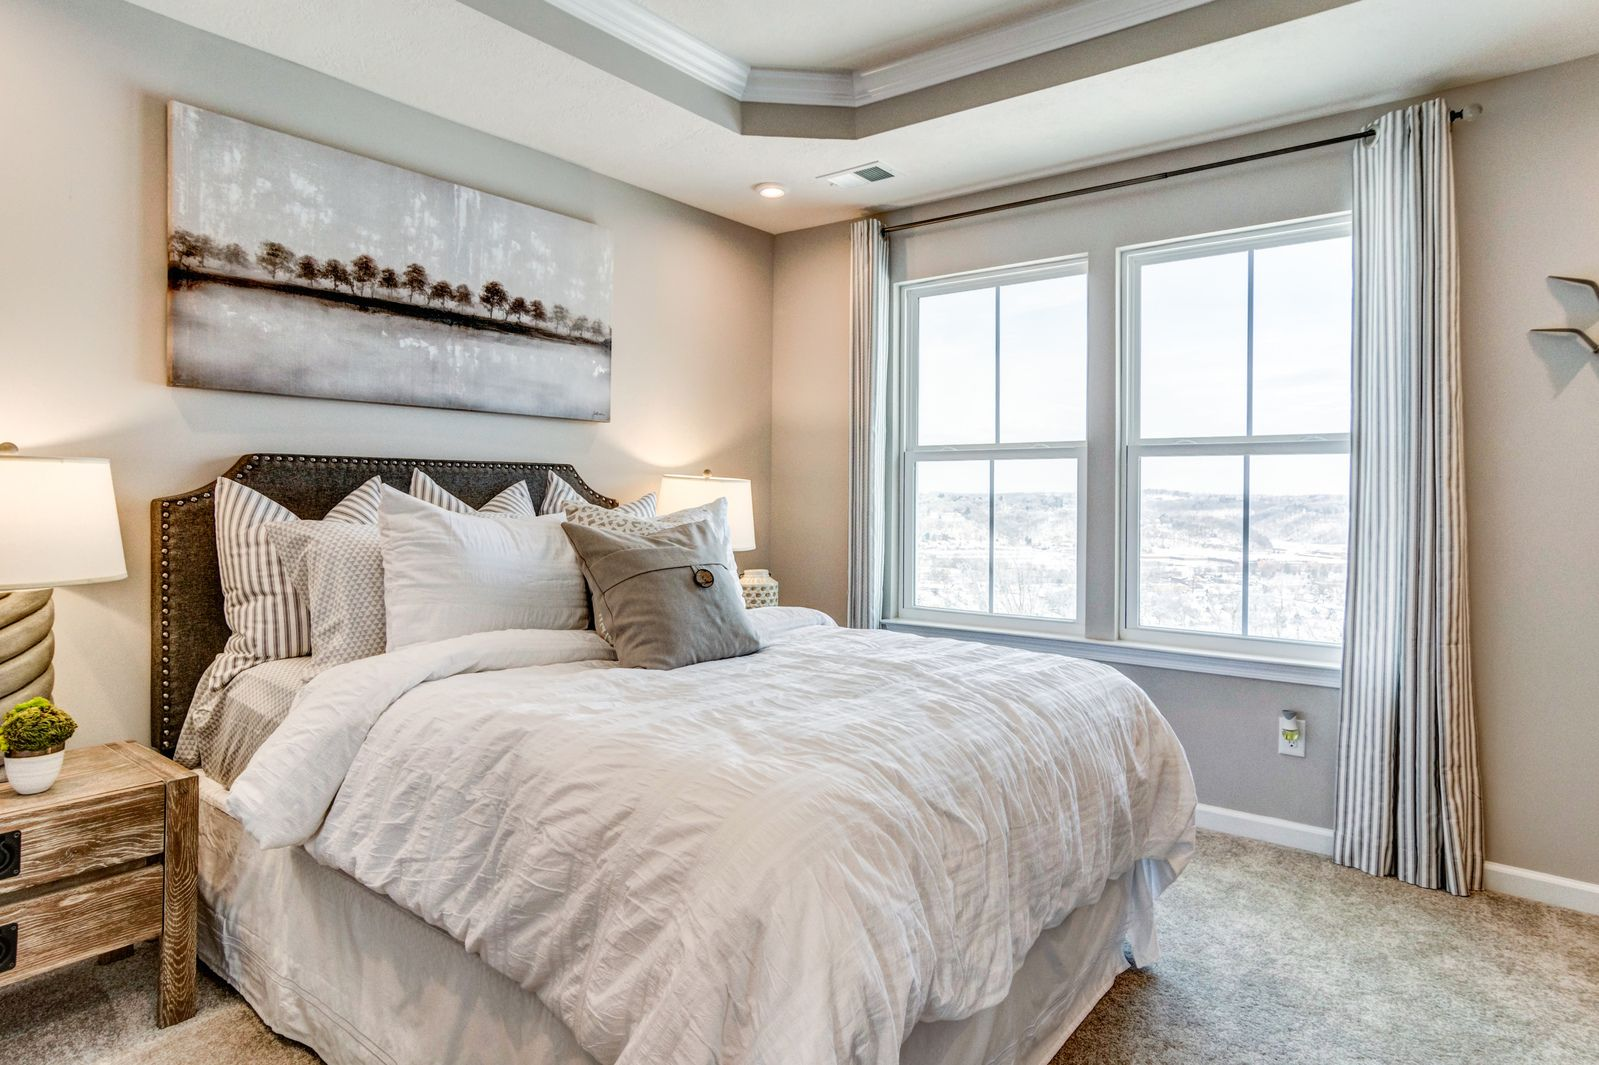 Bedroom featured in the Beethoven Front 1-Car Garage By Ryan Homes in Baltimore, MD